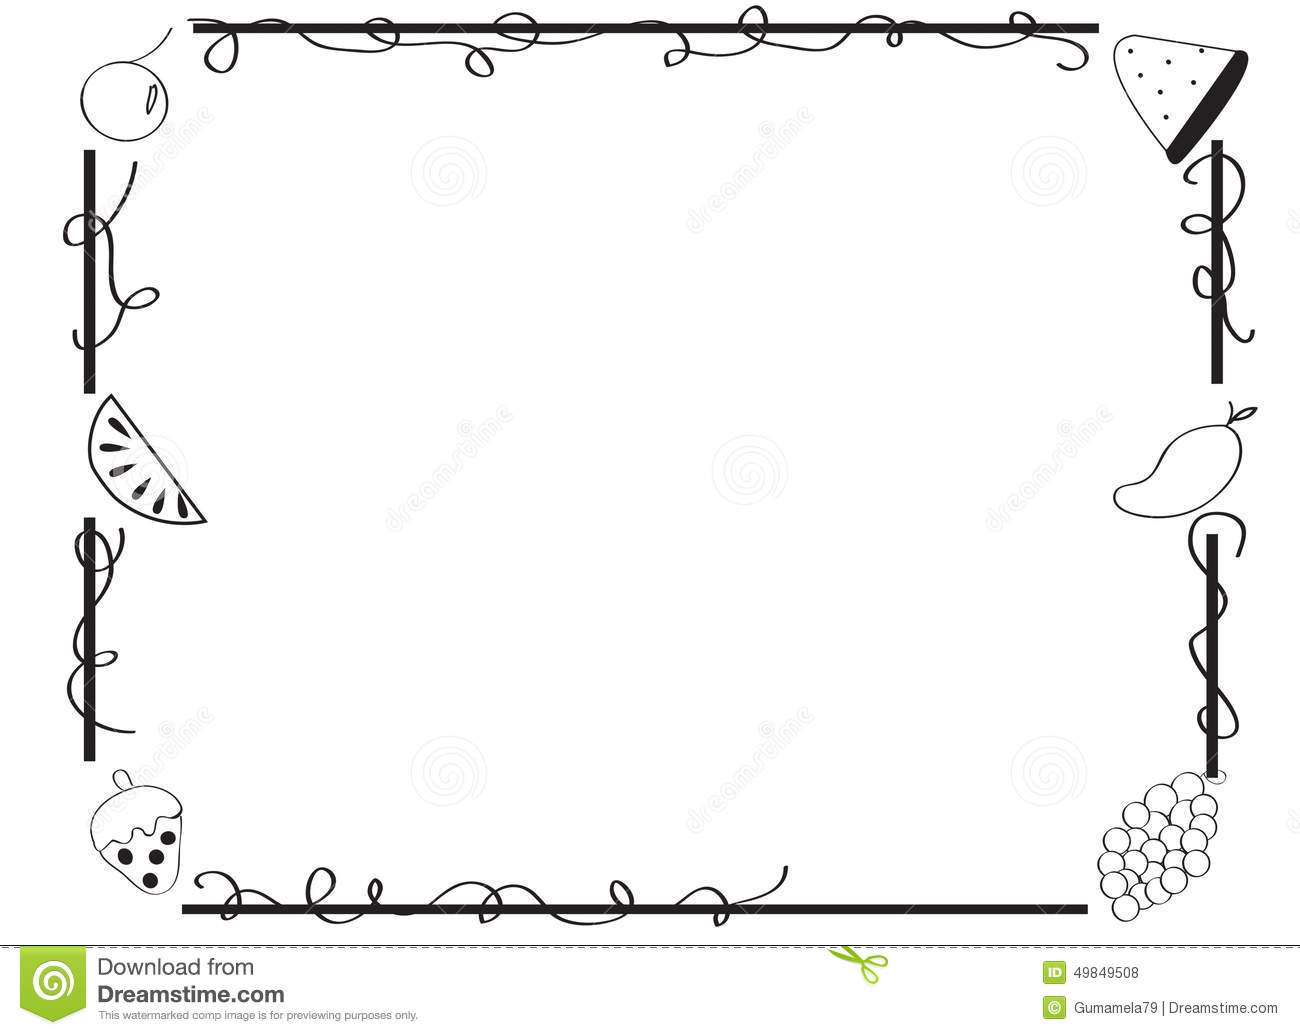 Draw An Eggplant as well Ostrich moreover Avocado also Apple Clip Art Black And White further . on fruit shapes